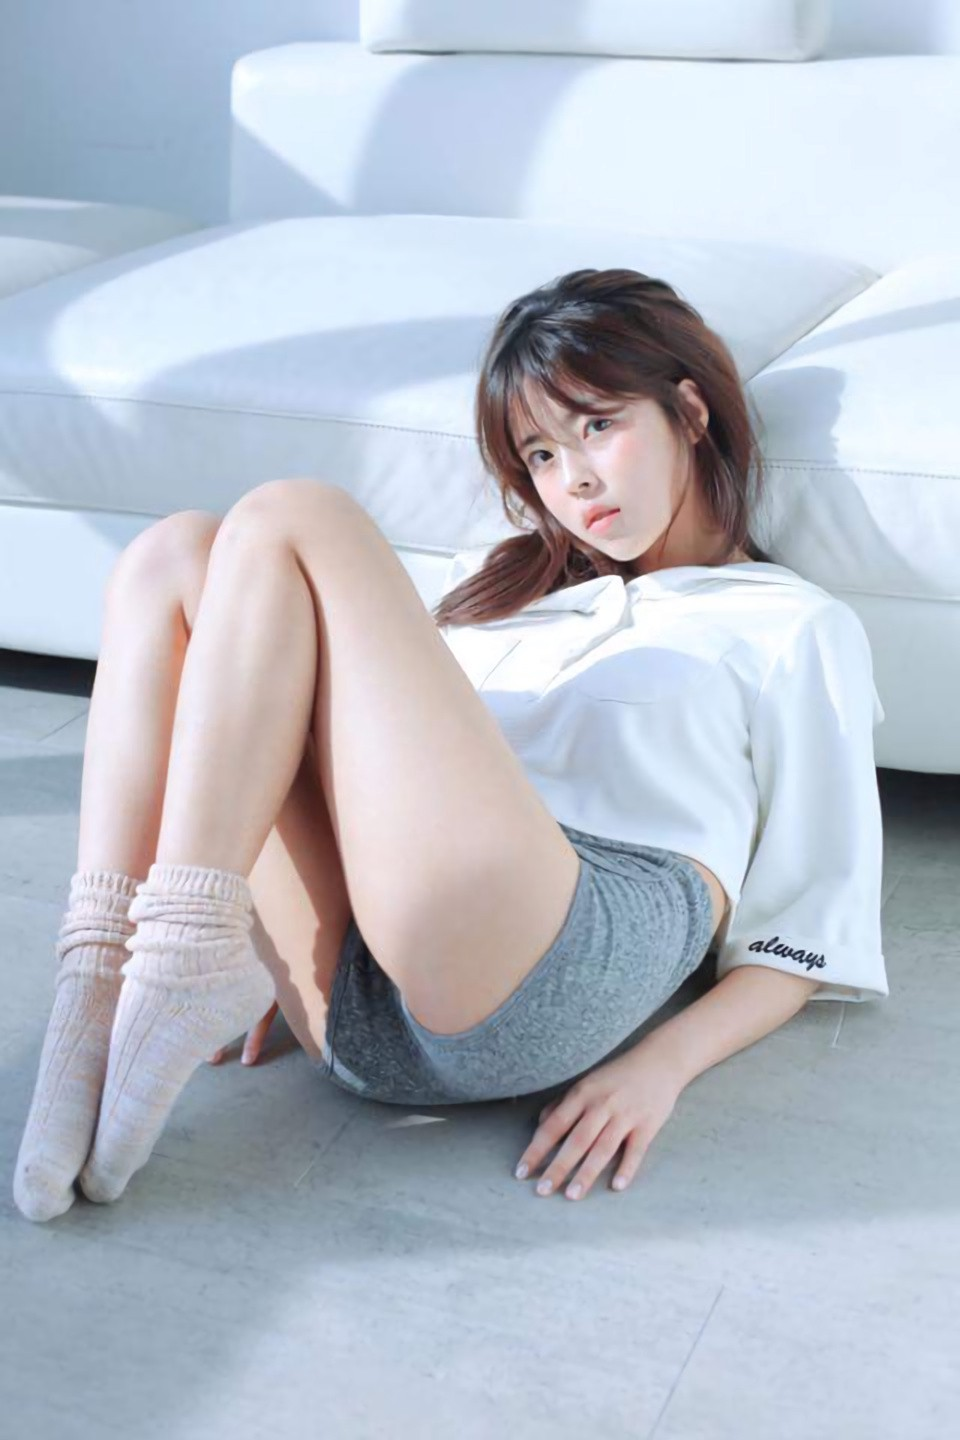 Ls- nude imagesize:960x1440 Fully clothed, not showing any primary or secondary sex organs, engaged in  so explicit sexual acts. But, socks? Half-parted lips?